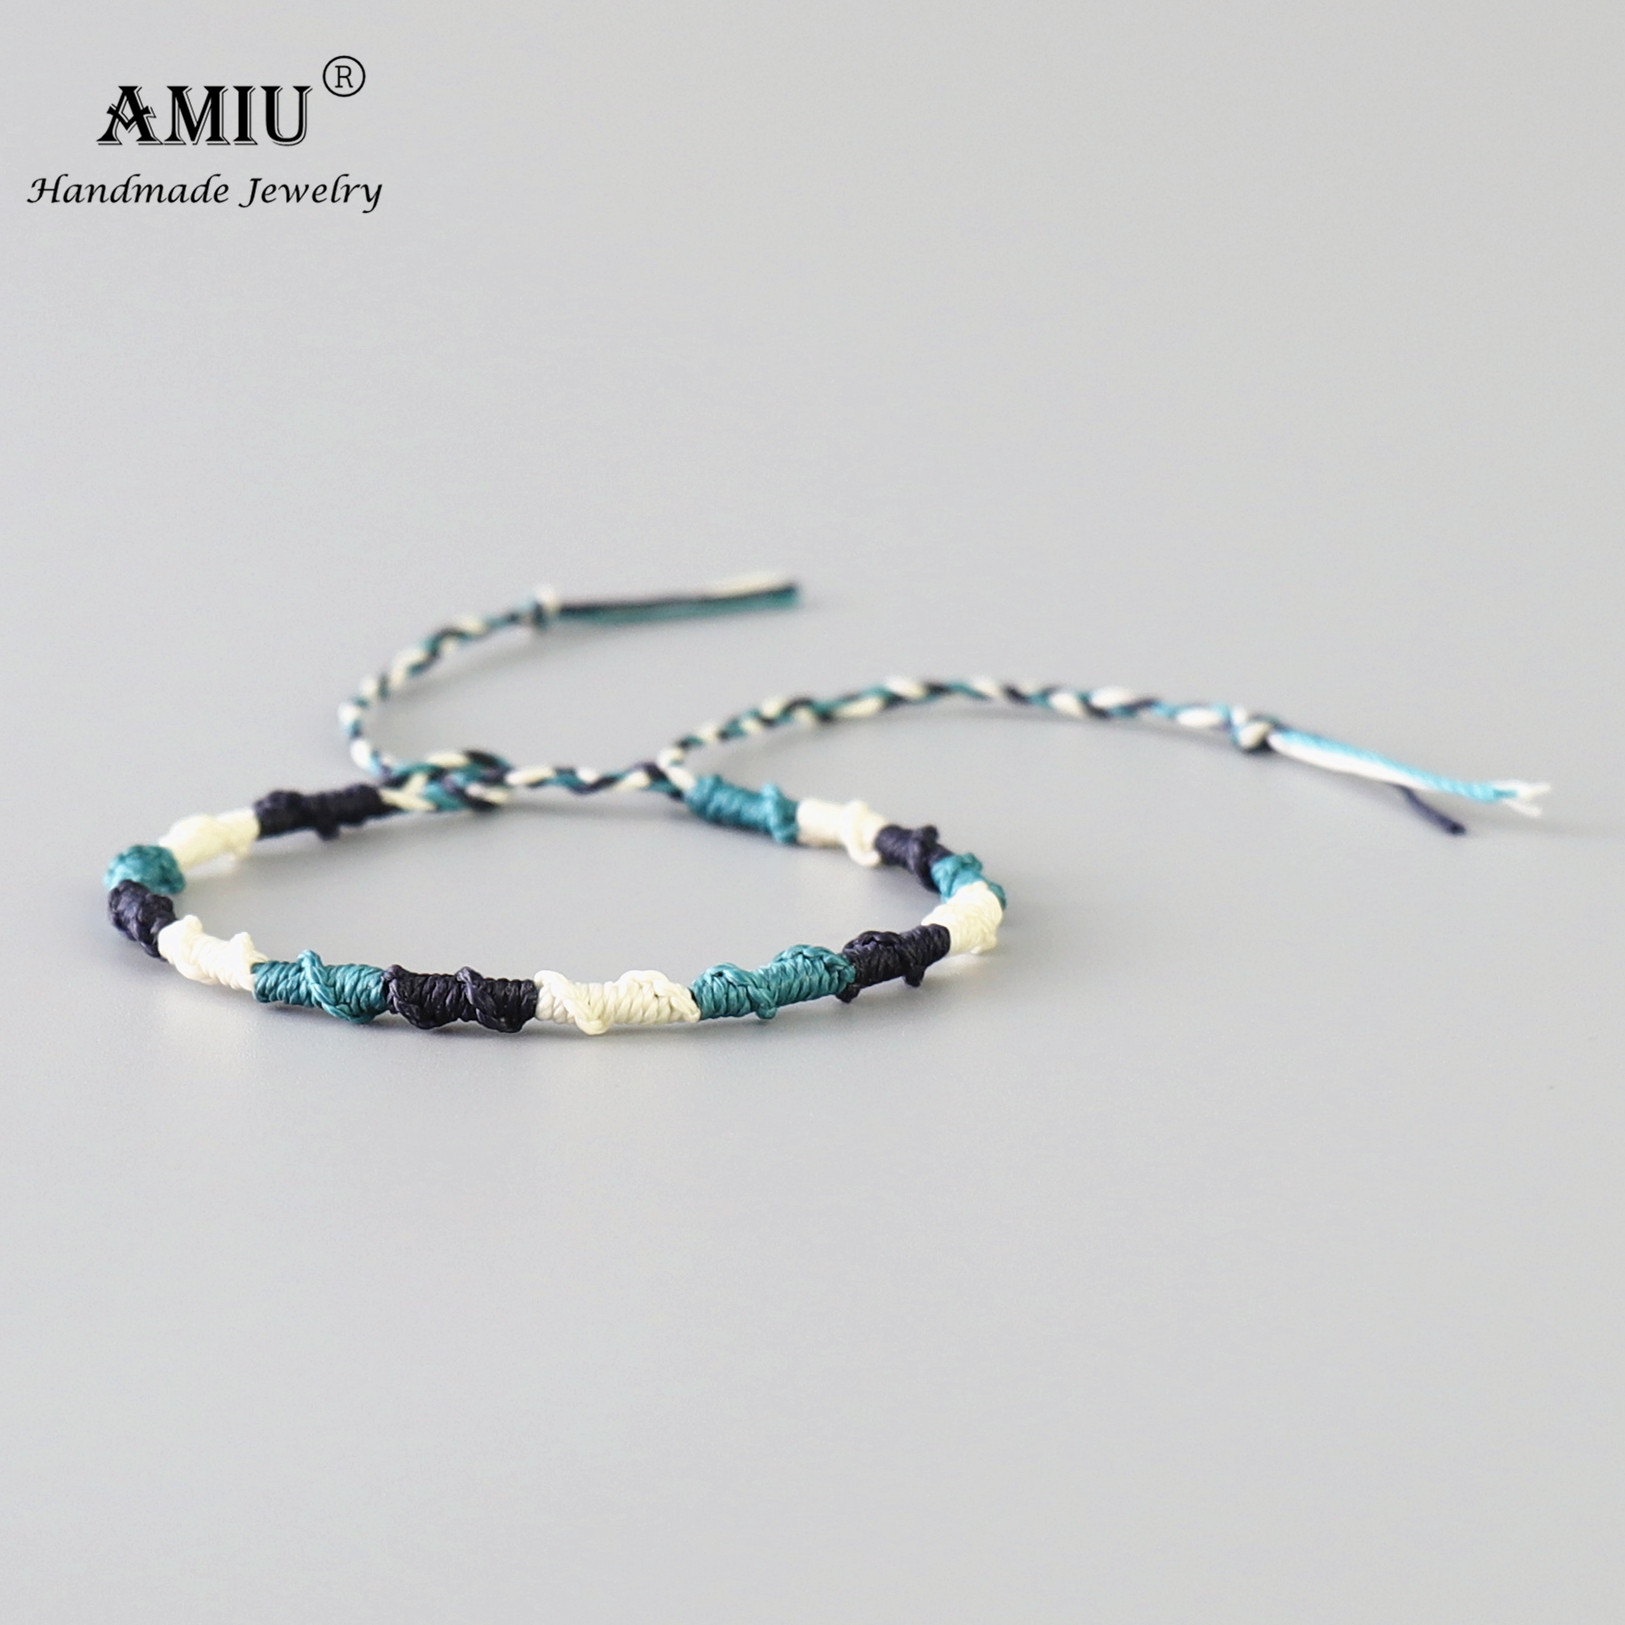 AMIU Handmade Waterproof Wax Thread Woven Wrap Bracelet Simple Rope Knot Bracelet Friendship Bracelet for Men and Women